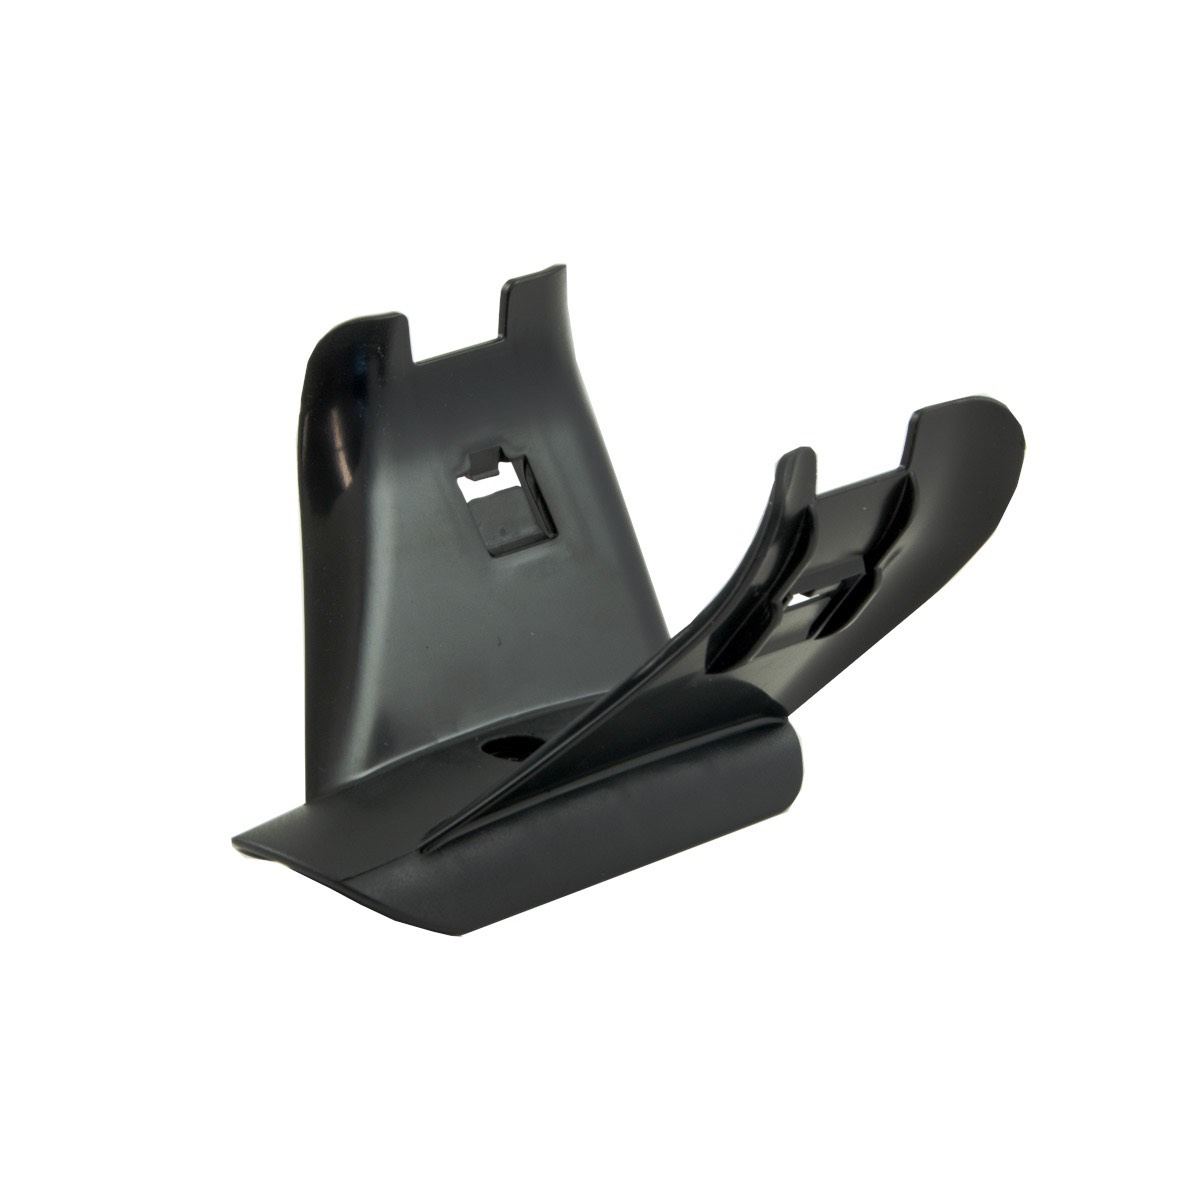 8001-0015, FBS Series Armrest for E-TRAC, Explorer SE Pro, and Safari